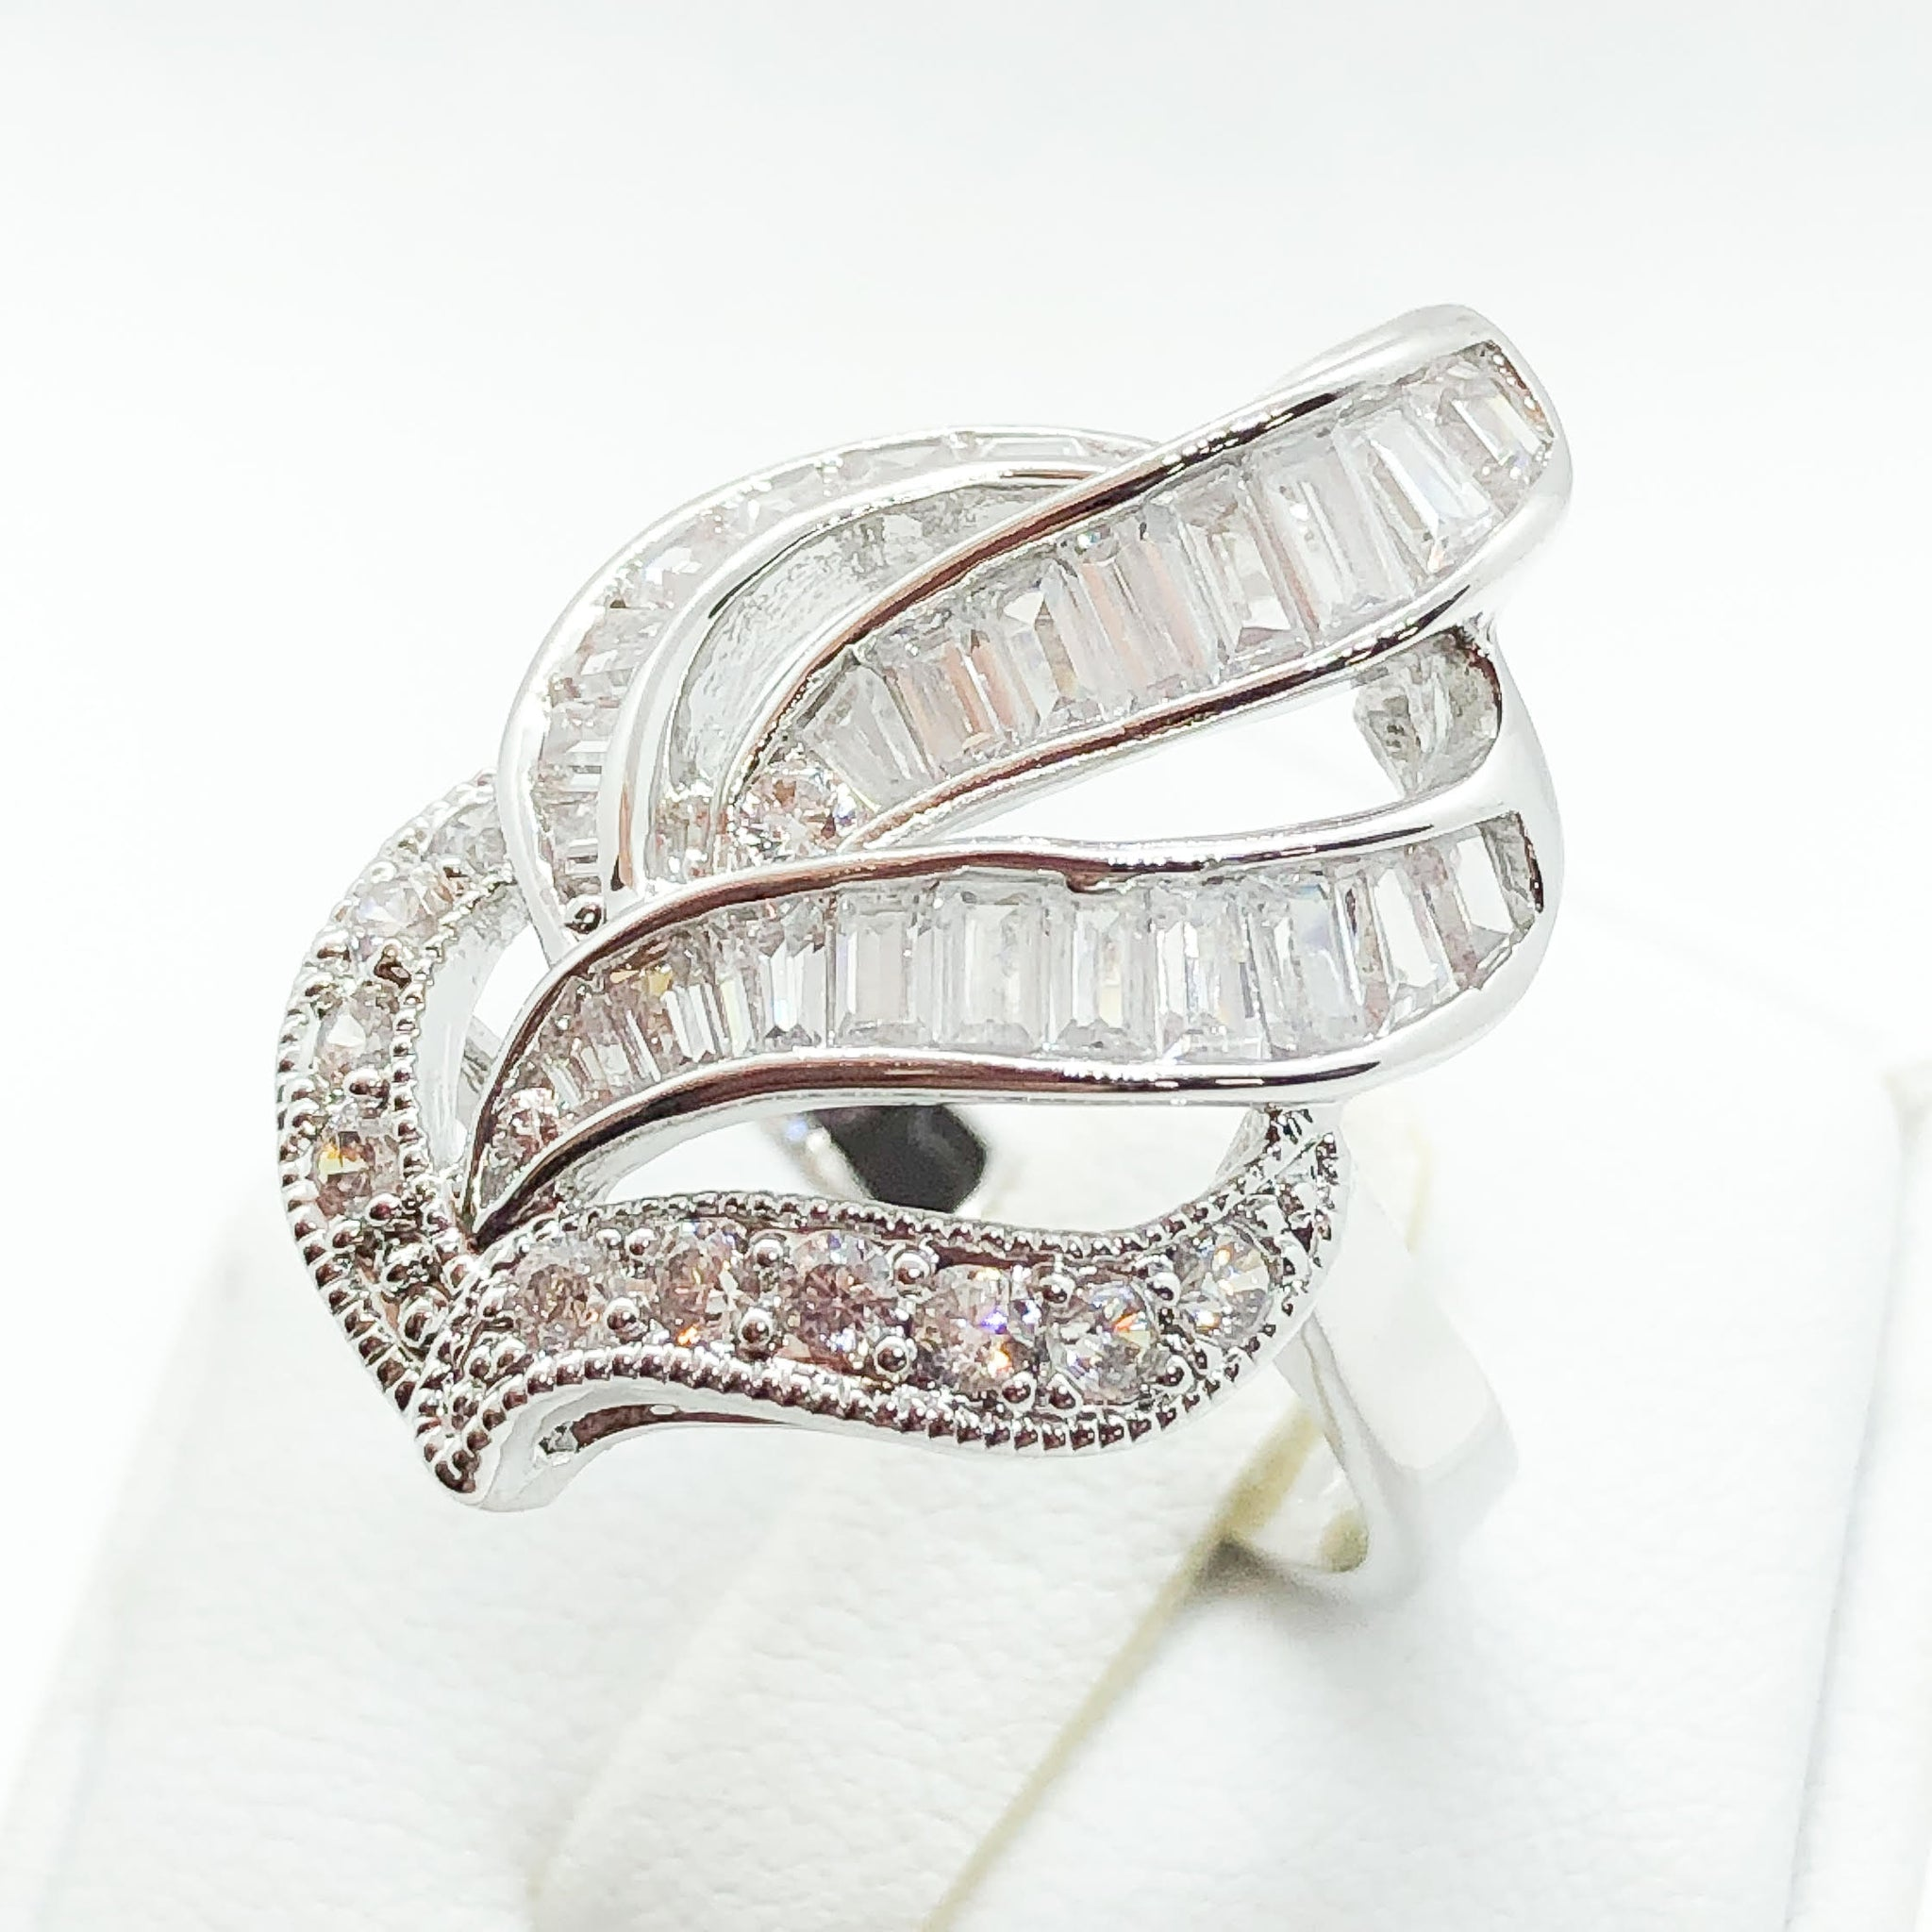 ID:R5863 Women 18K White Gold GF Fashion Jewelry Unique Design Promise Anniversary Clear Gemstones Cluster Cocktail Ring